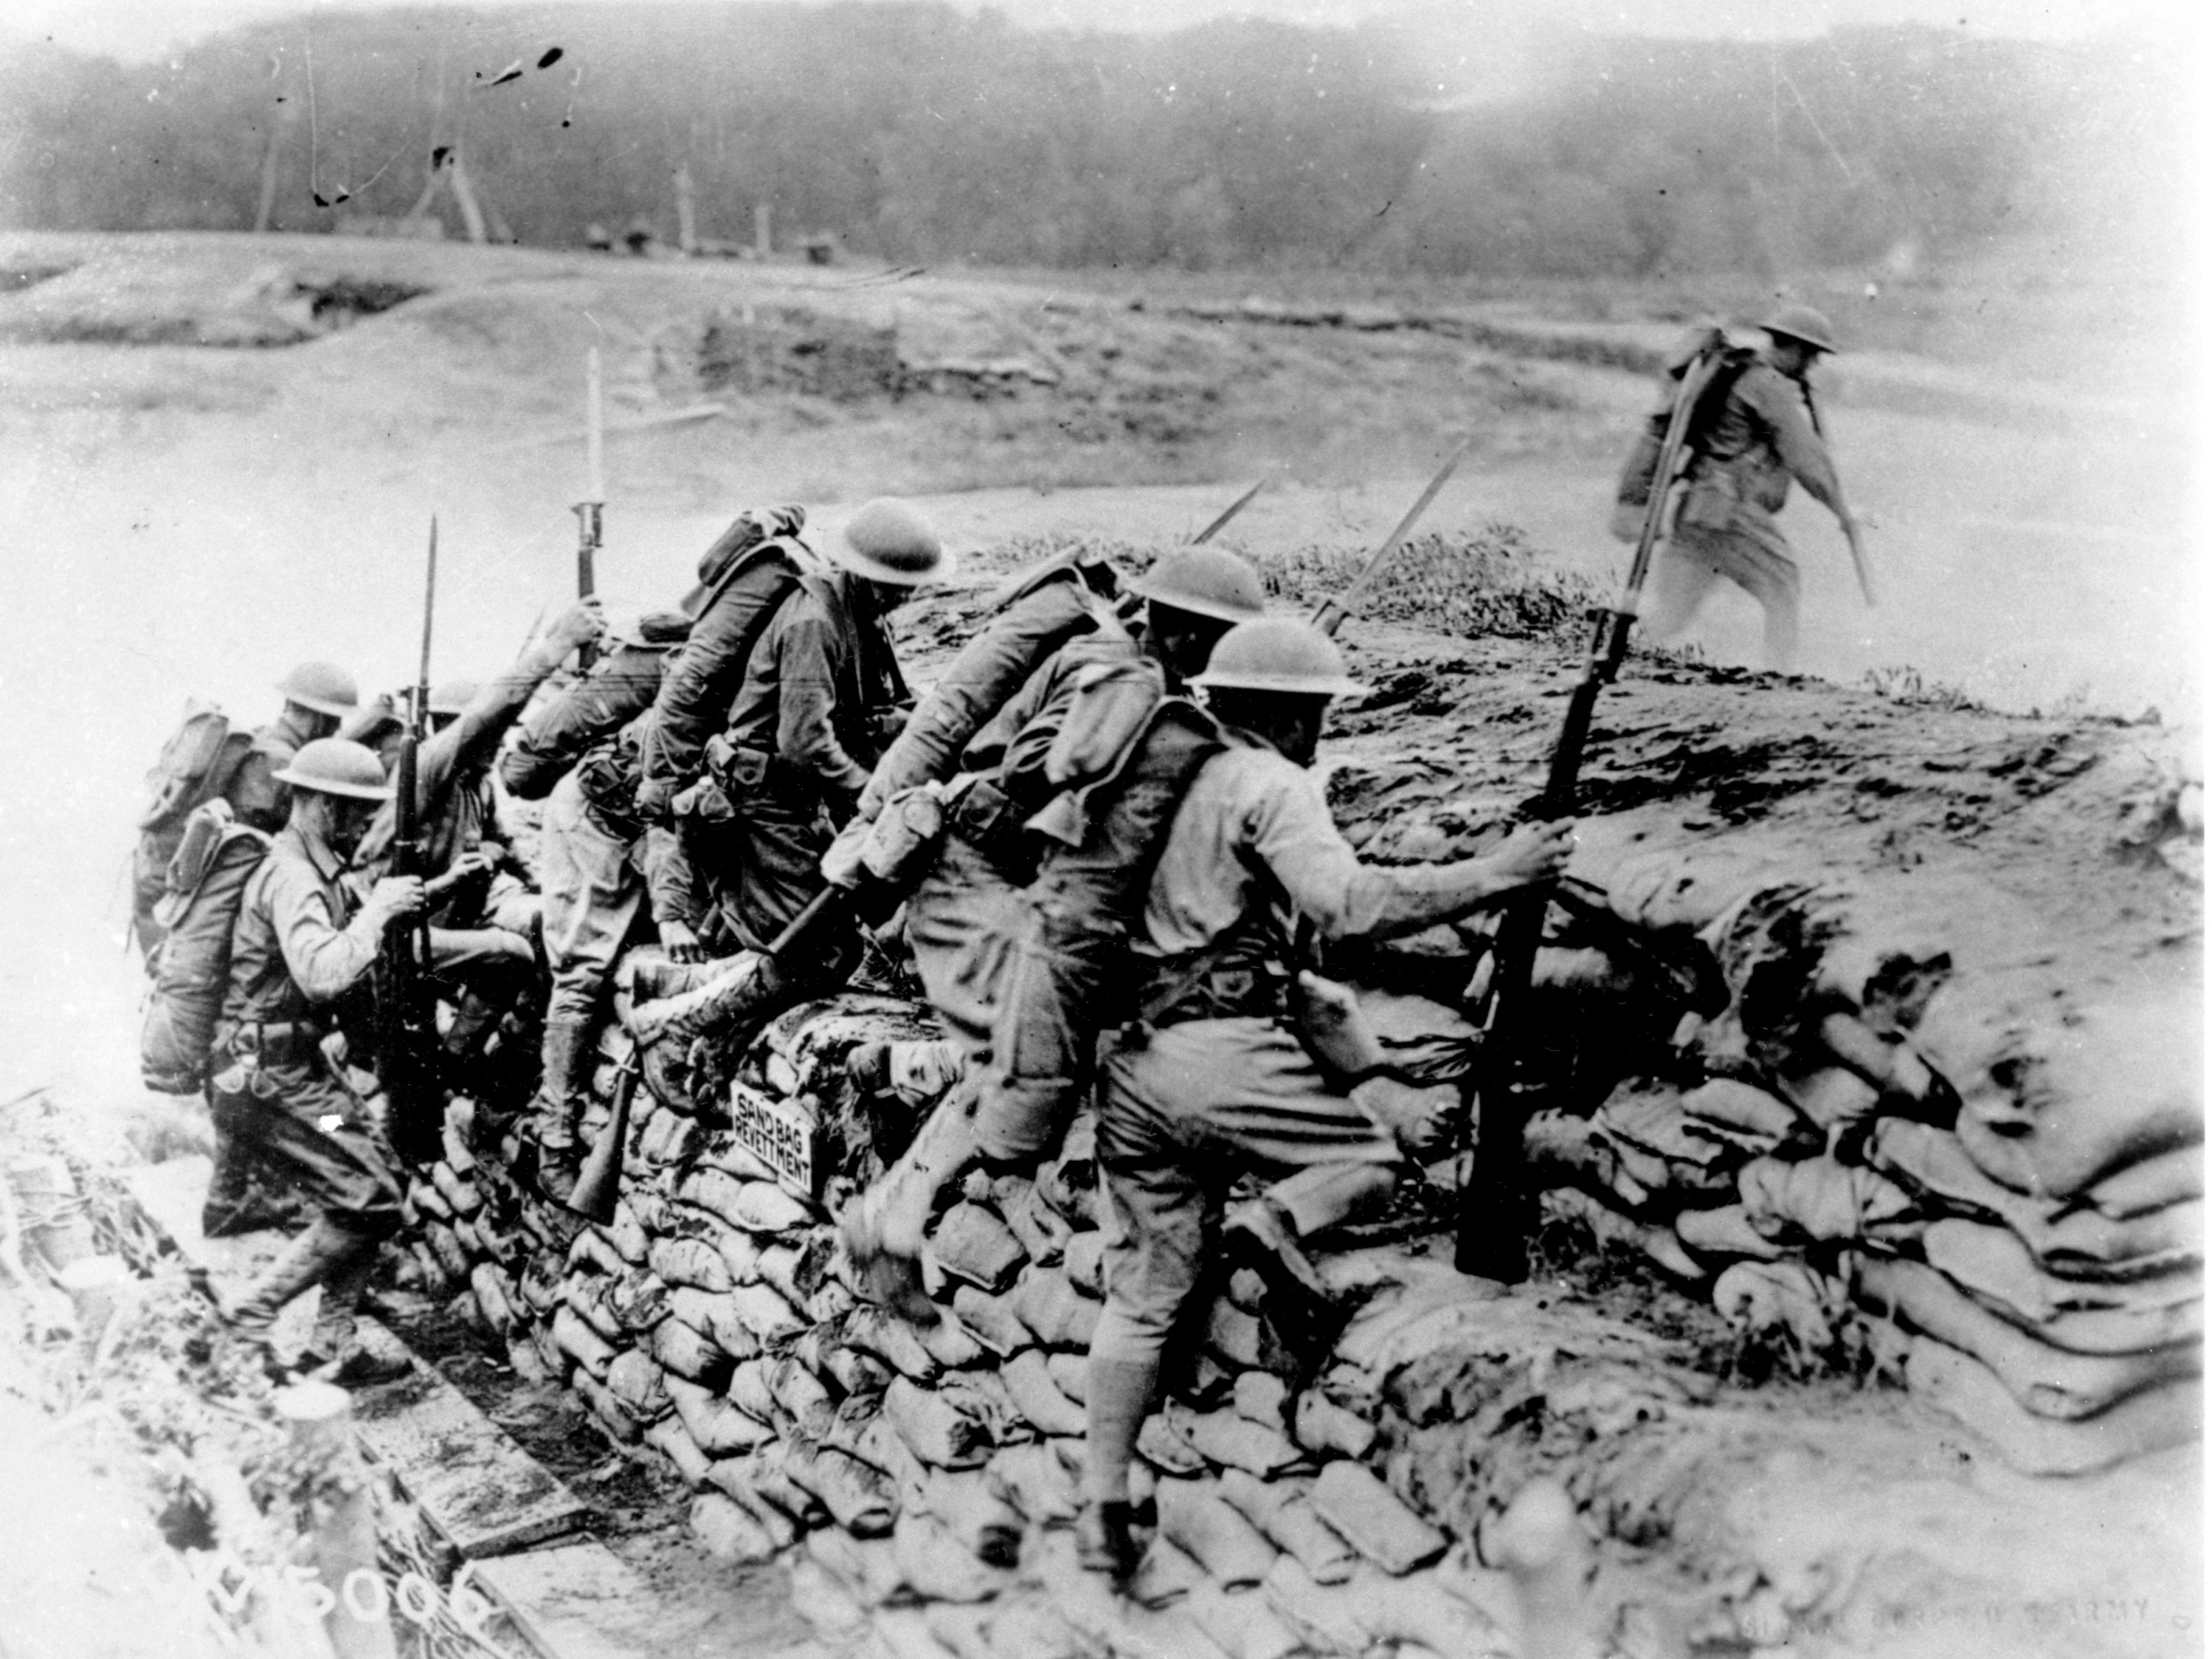 American troops climb over a sandbag barrier in France during World War I in 1918. The U.S. waited almost three years before entering the war, but the fresh American troops played a major role in deciding the outcome of a conflict that has been locked in stalemate. April 6 marks the 100th anniversary of the U.S. entrance into the war. (AP)